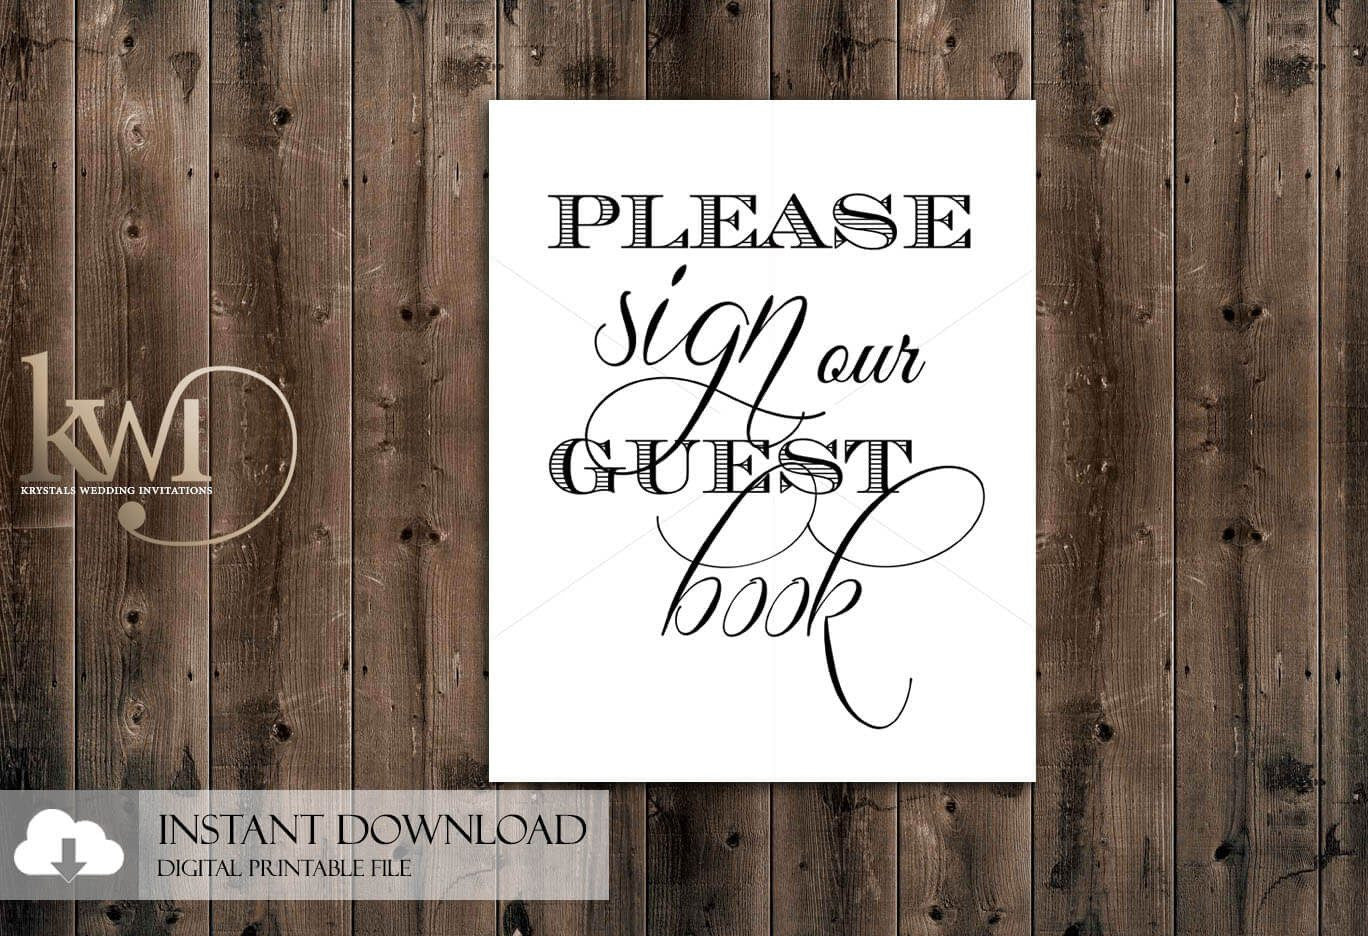 DIY Printables - 8x10 - Please Sign our Guest Book Sign - Krystals Wedding Invitations